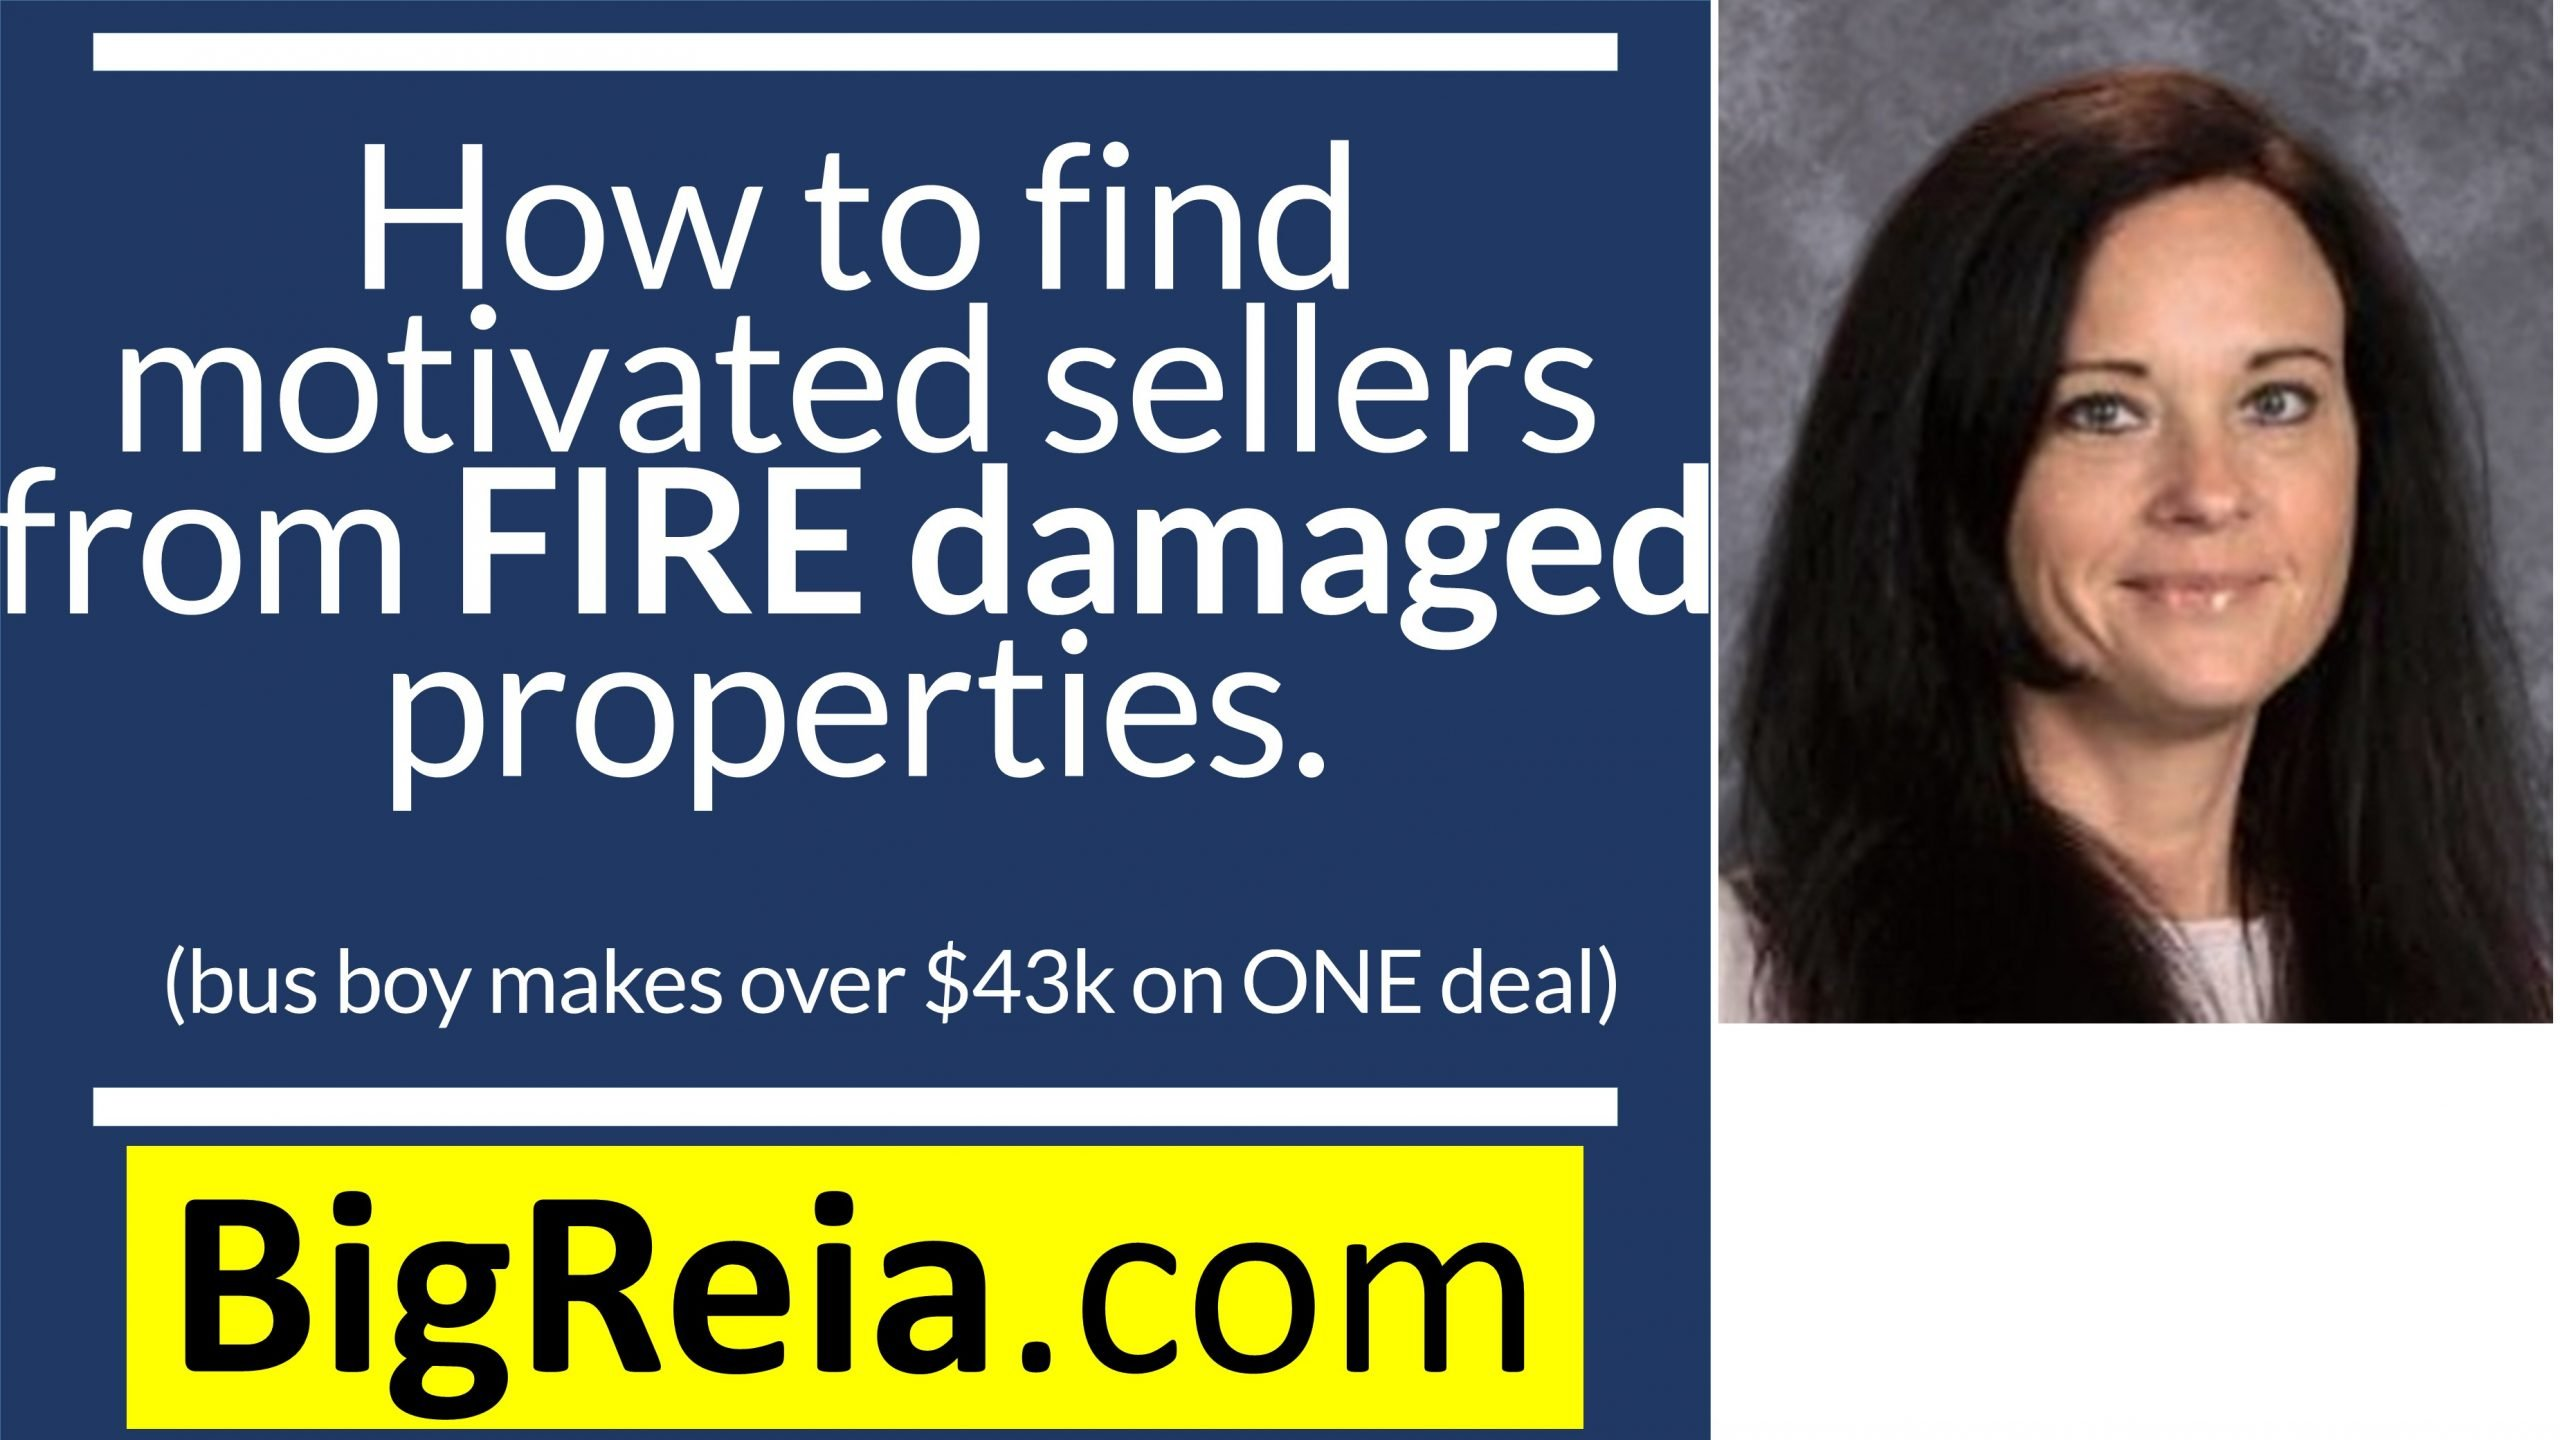 How to find motivated sellers from fire damaged properties, busboy makes over 47 grand on ONE deal.